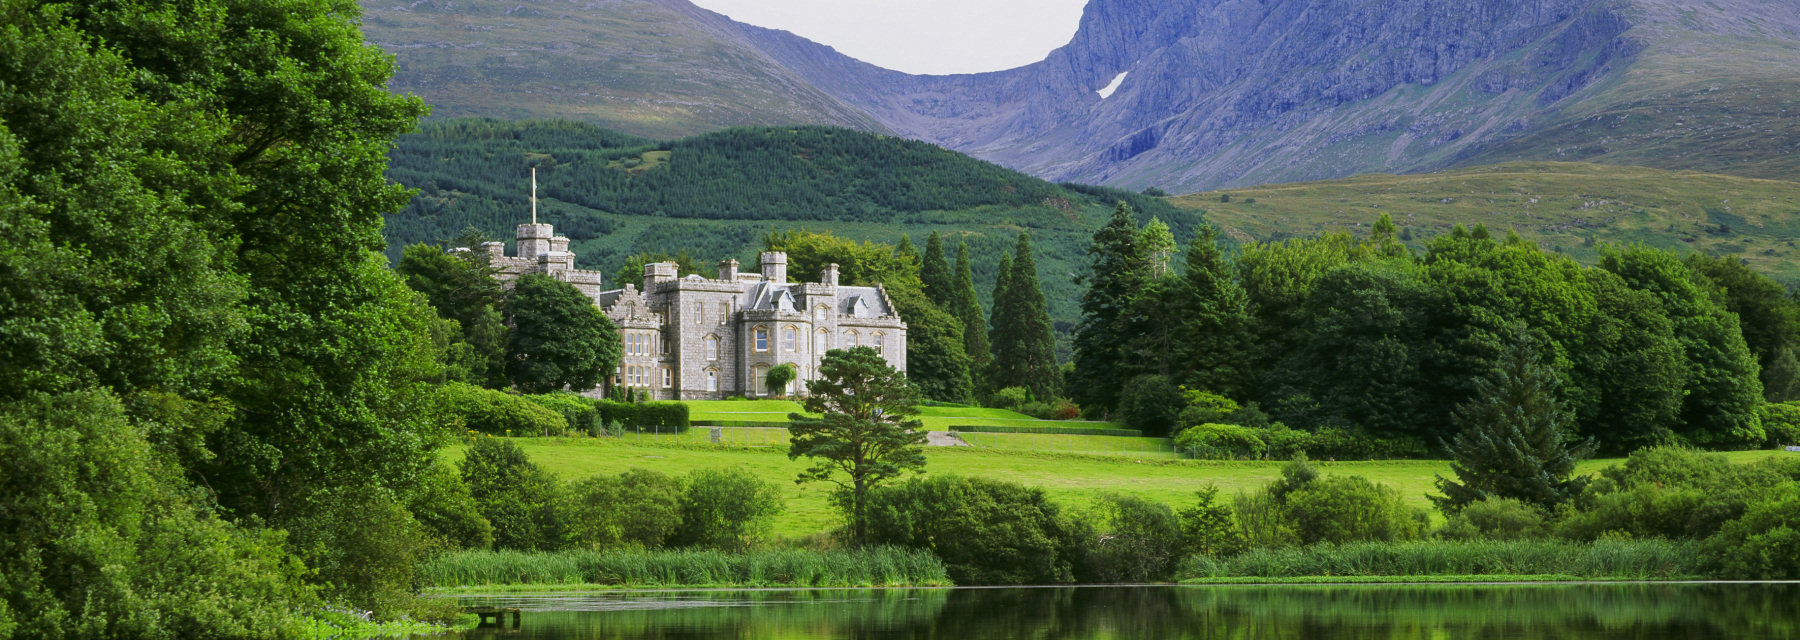 Inverlochy Castle Hotel In Scotland